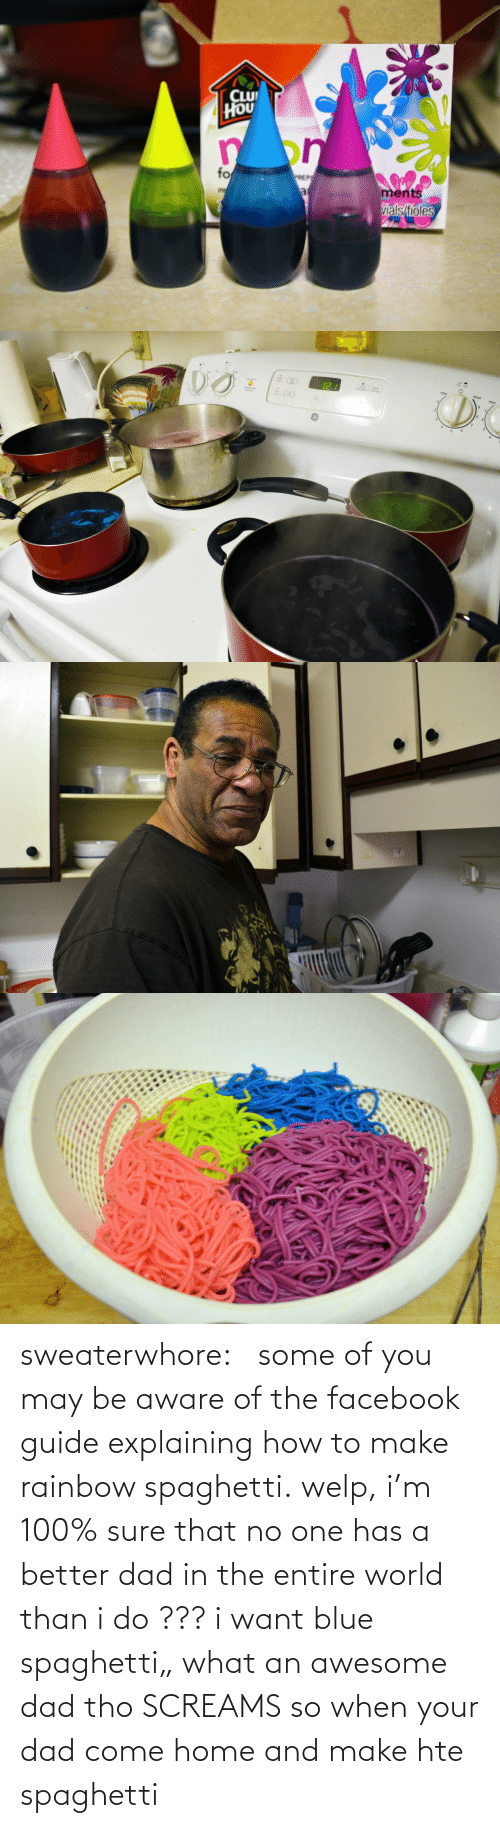 """Awesome Dad: CLU  HOU  on  fo  PREP  ments  vials/fioles  PR  al sweaterwhore:        some of you may be aware of the facebook guide explaining how to make rainbow spaghetti. welp, i'm 100% sure that no one has a better dad in the entire world than i do  ??? i want blue spaghetti""""  what an awesome dad tho  SCREAMS  so when your dad come home and make hte spaghetti"""